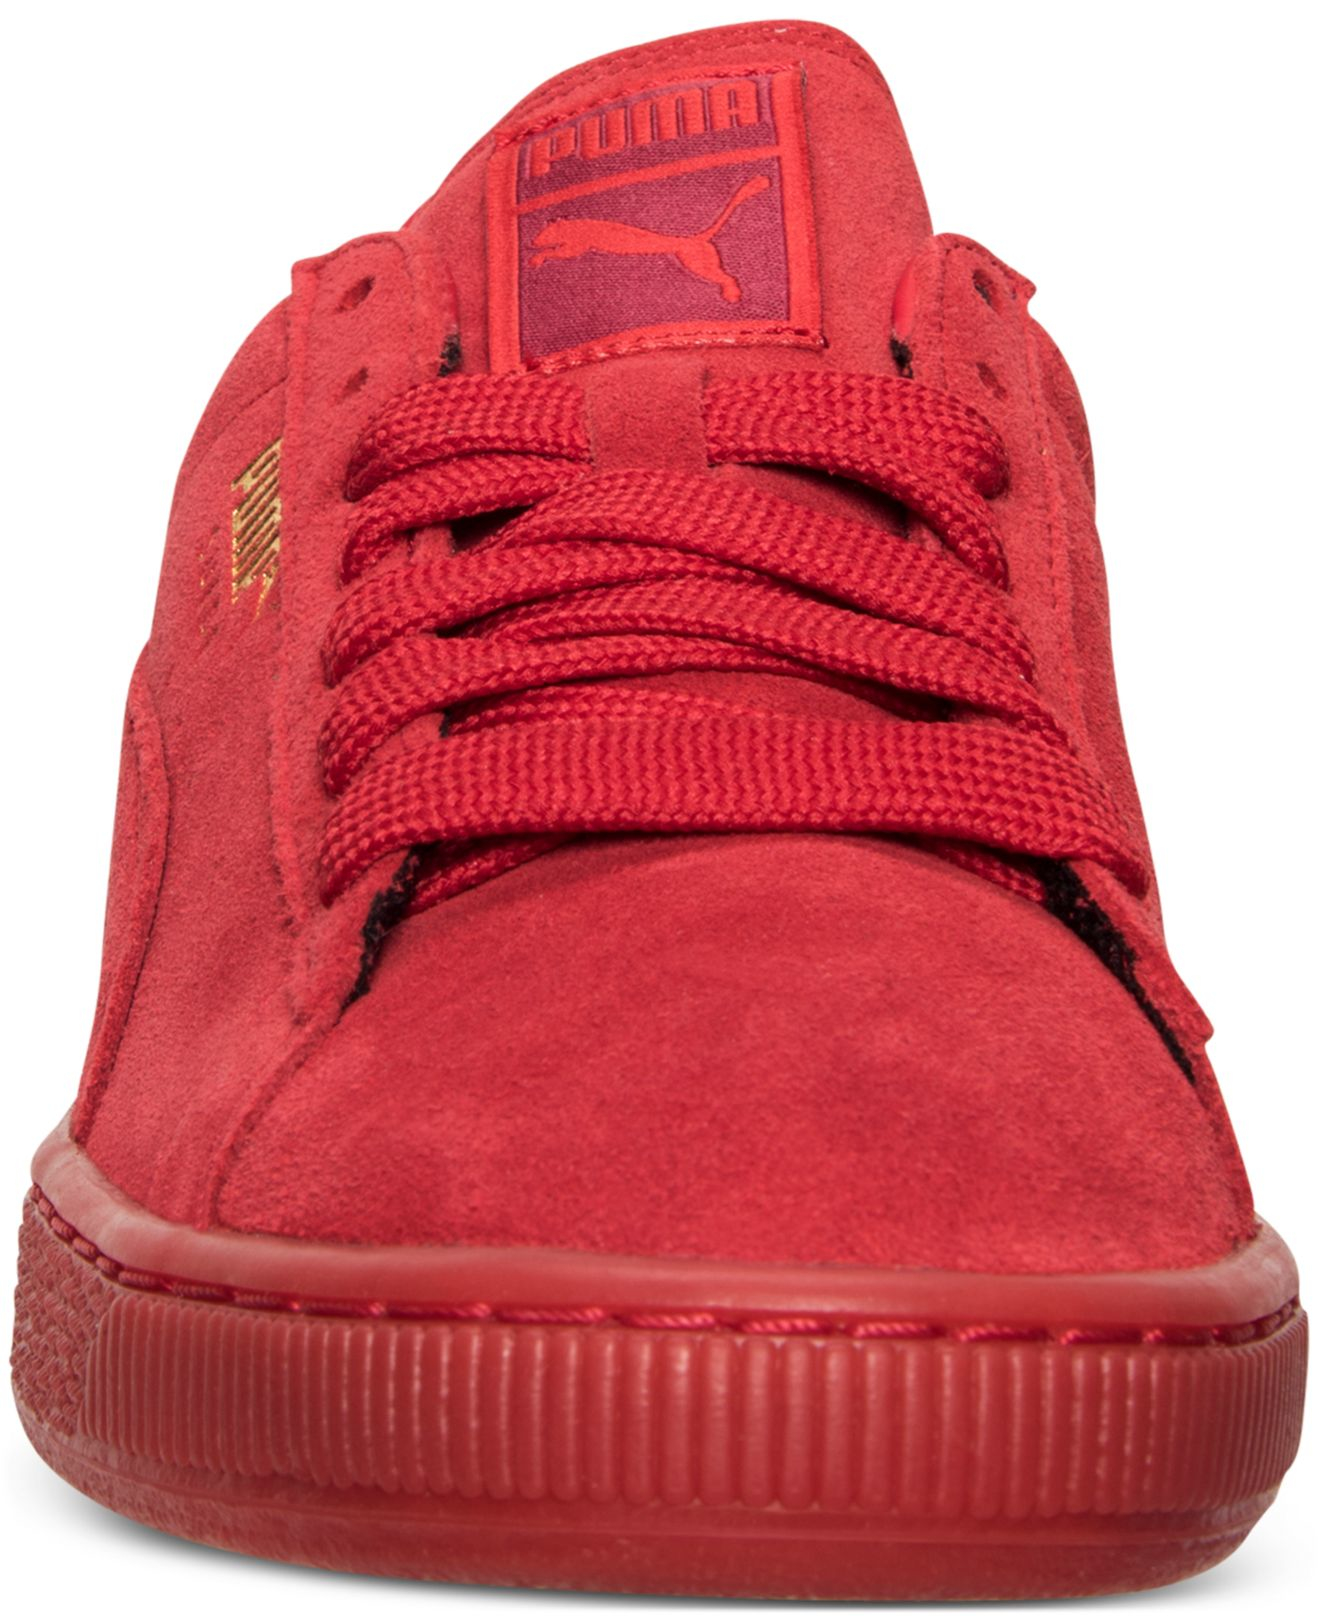 Lyst - PUMA Men s Suede Classic Iced Mono Casual Sneakers From ... 8e1dd0f2d